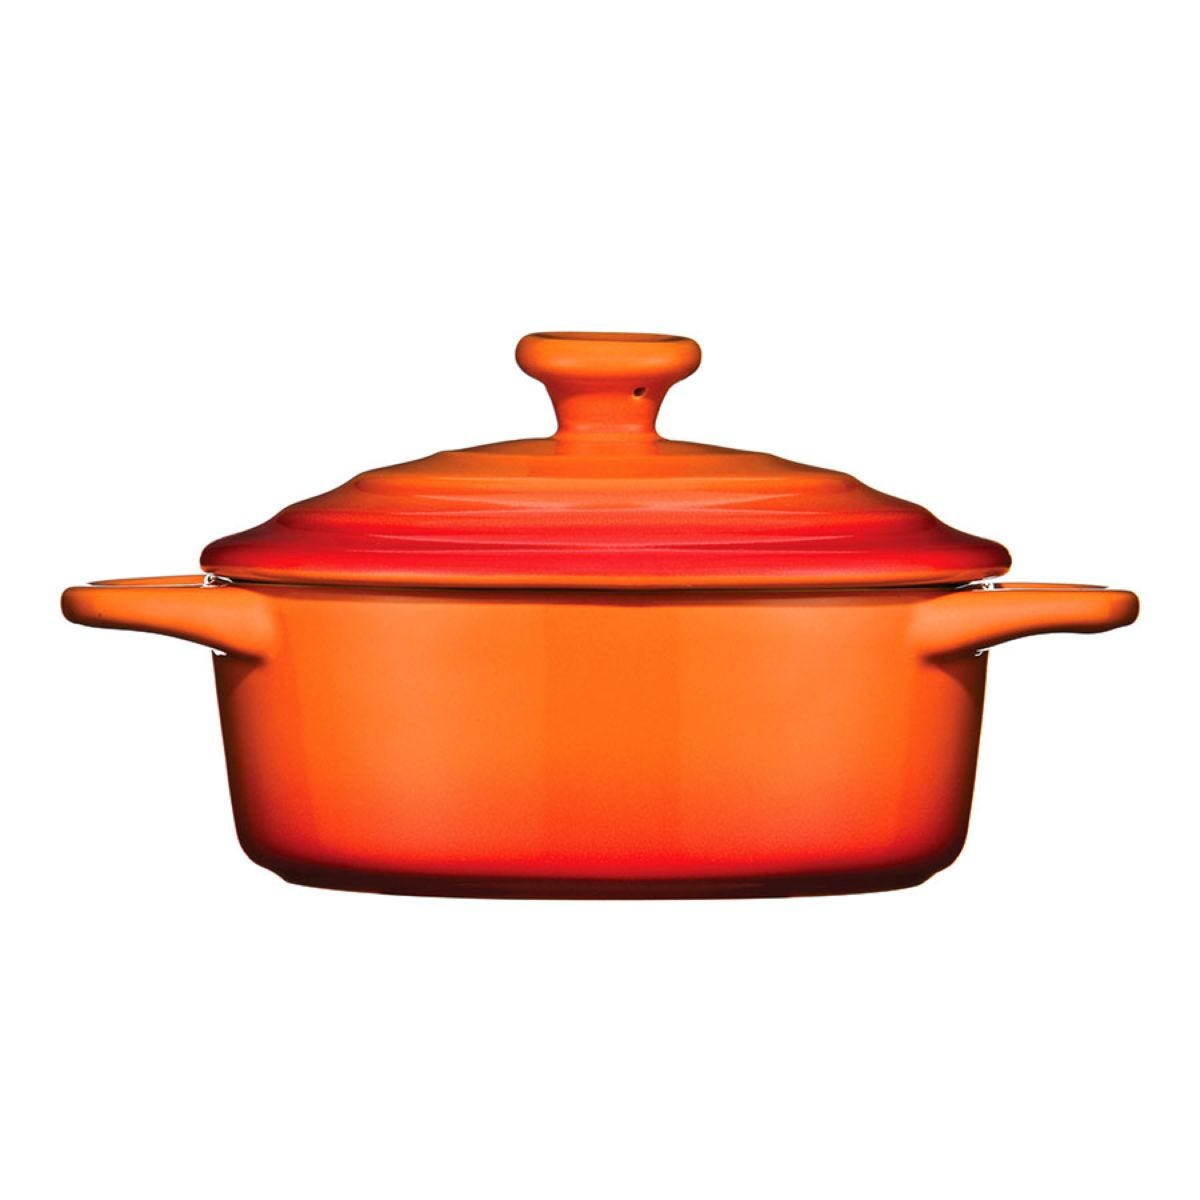 Premier Housewares Orange Casserole Dish - 600ml